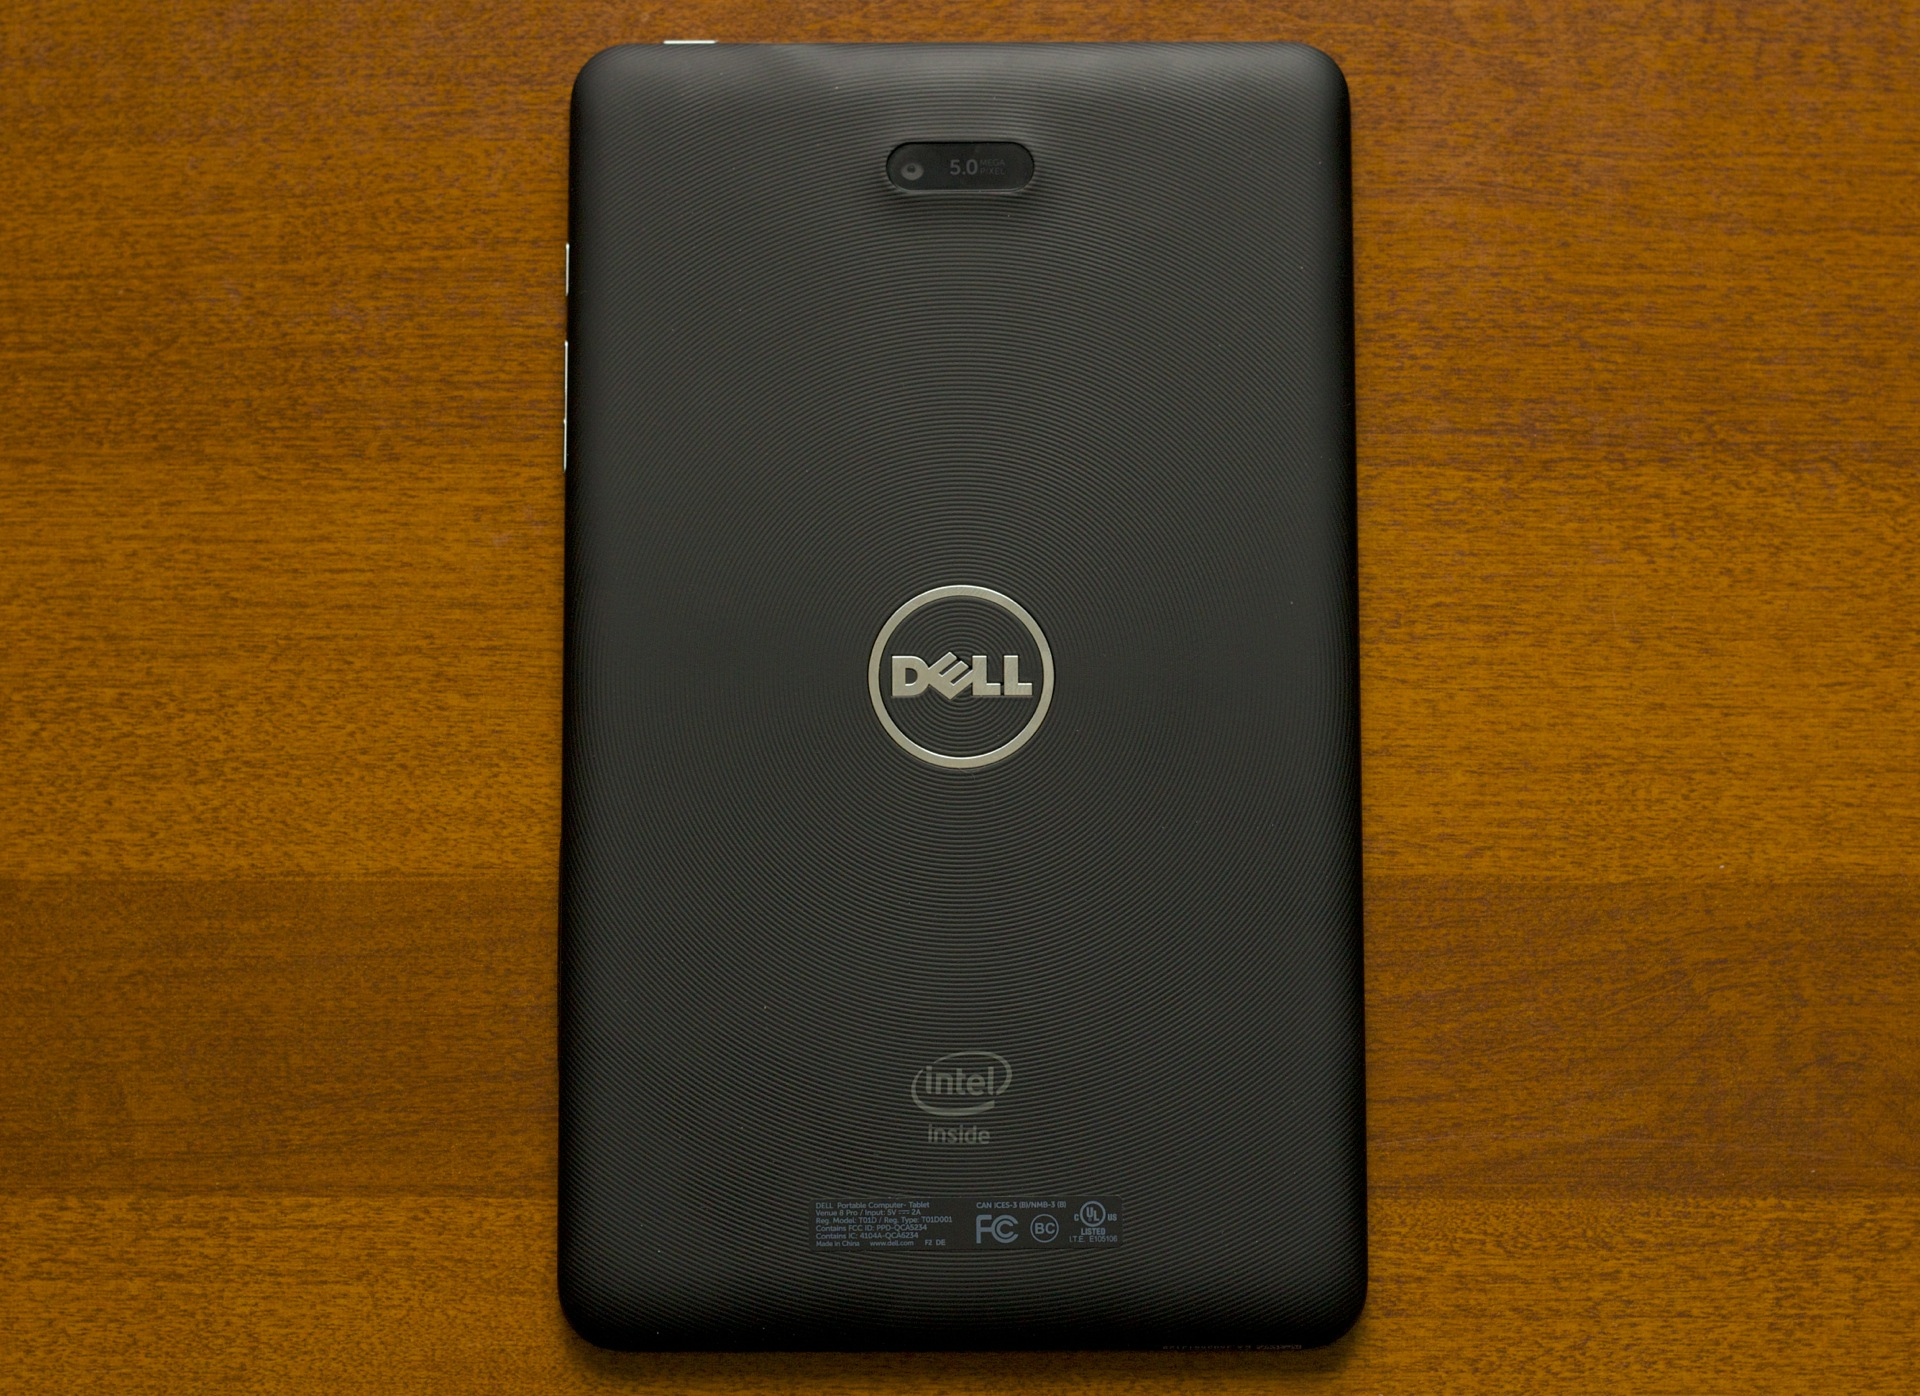 The back of the tablet has a pattern of rings that radiate outward from the center. Dell and Intel logos and the tablet's 5MP rear webcam are also on the back.